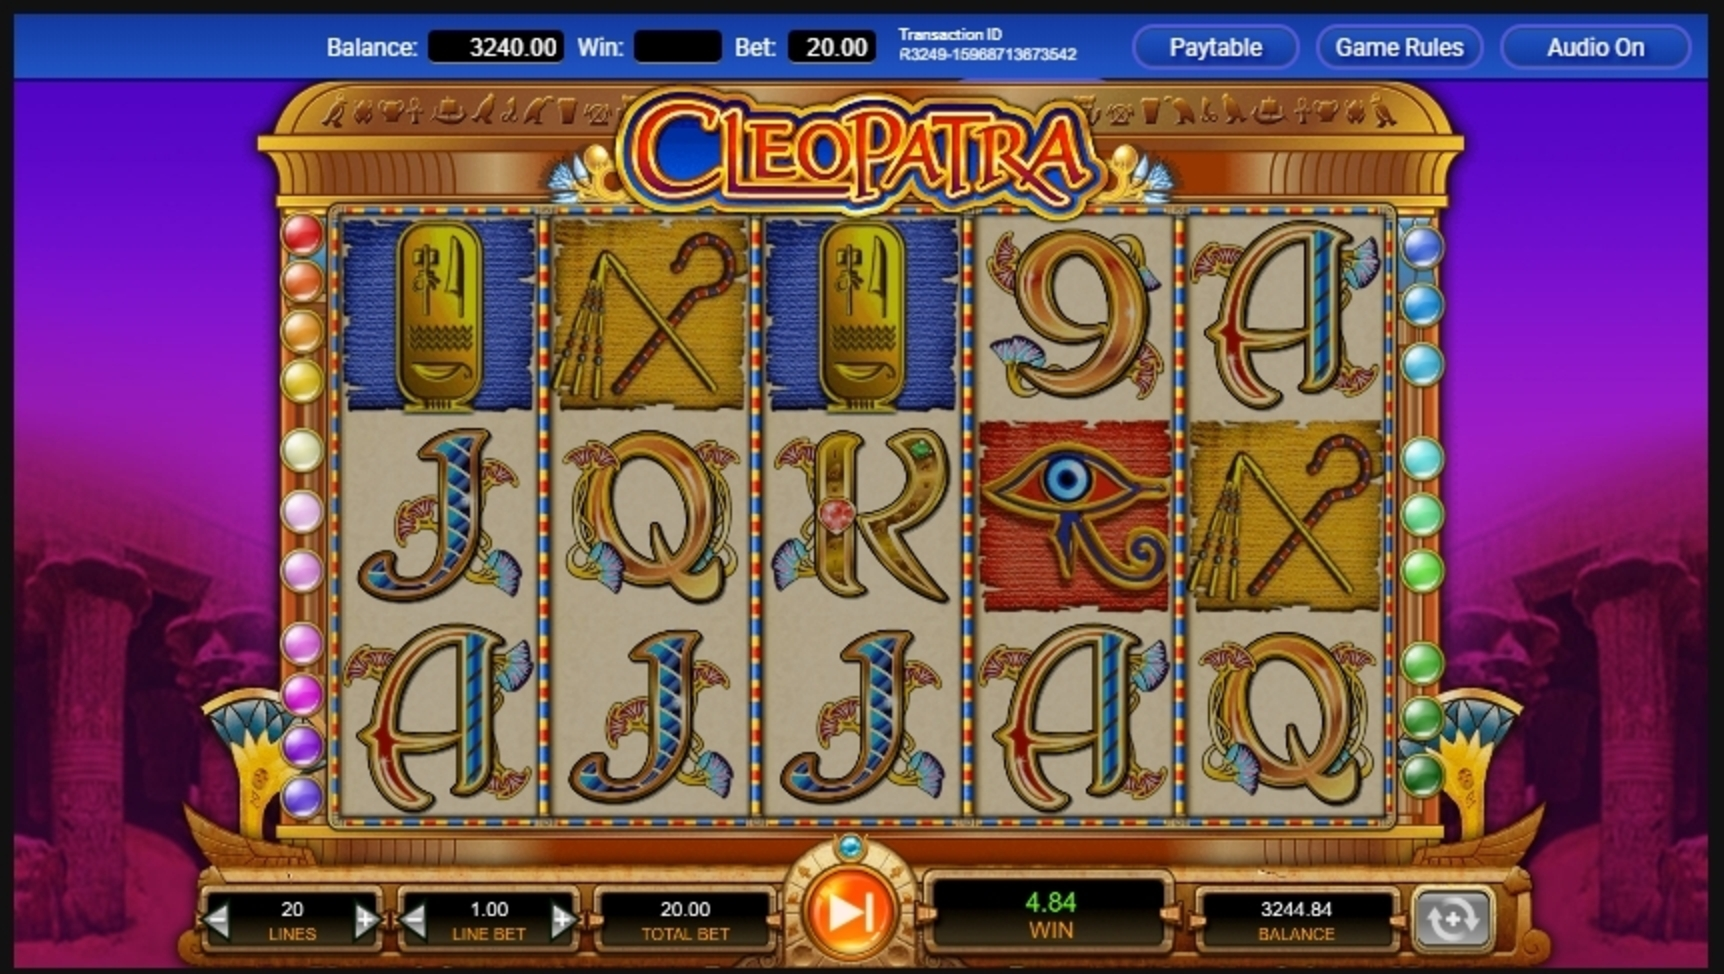 Win Money in Cleopatra (IGT) Free Slot Game by IGT